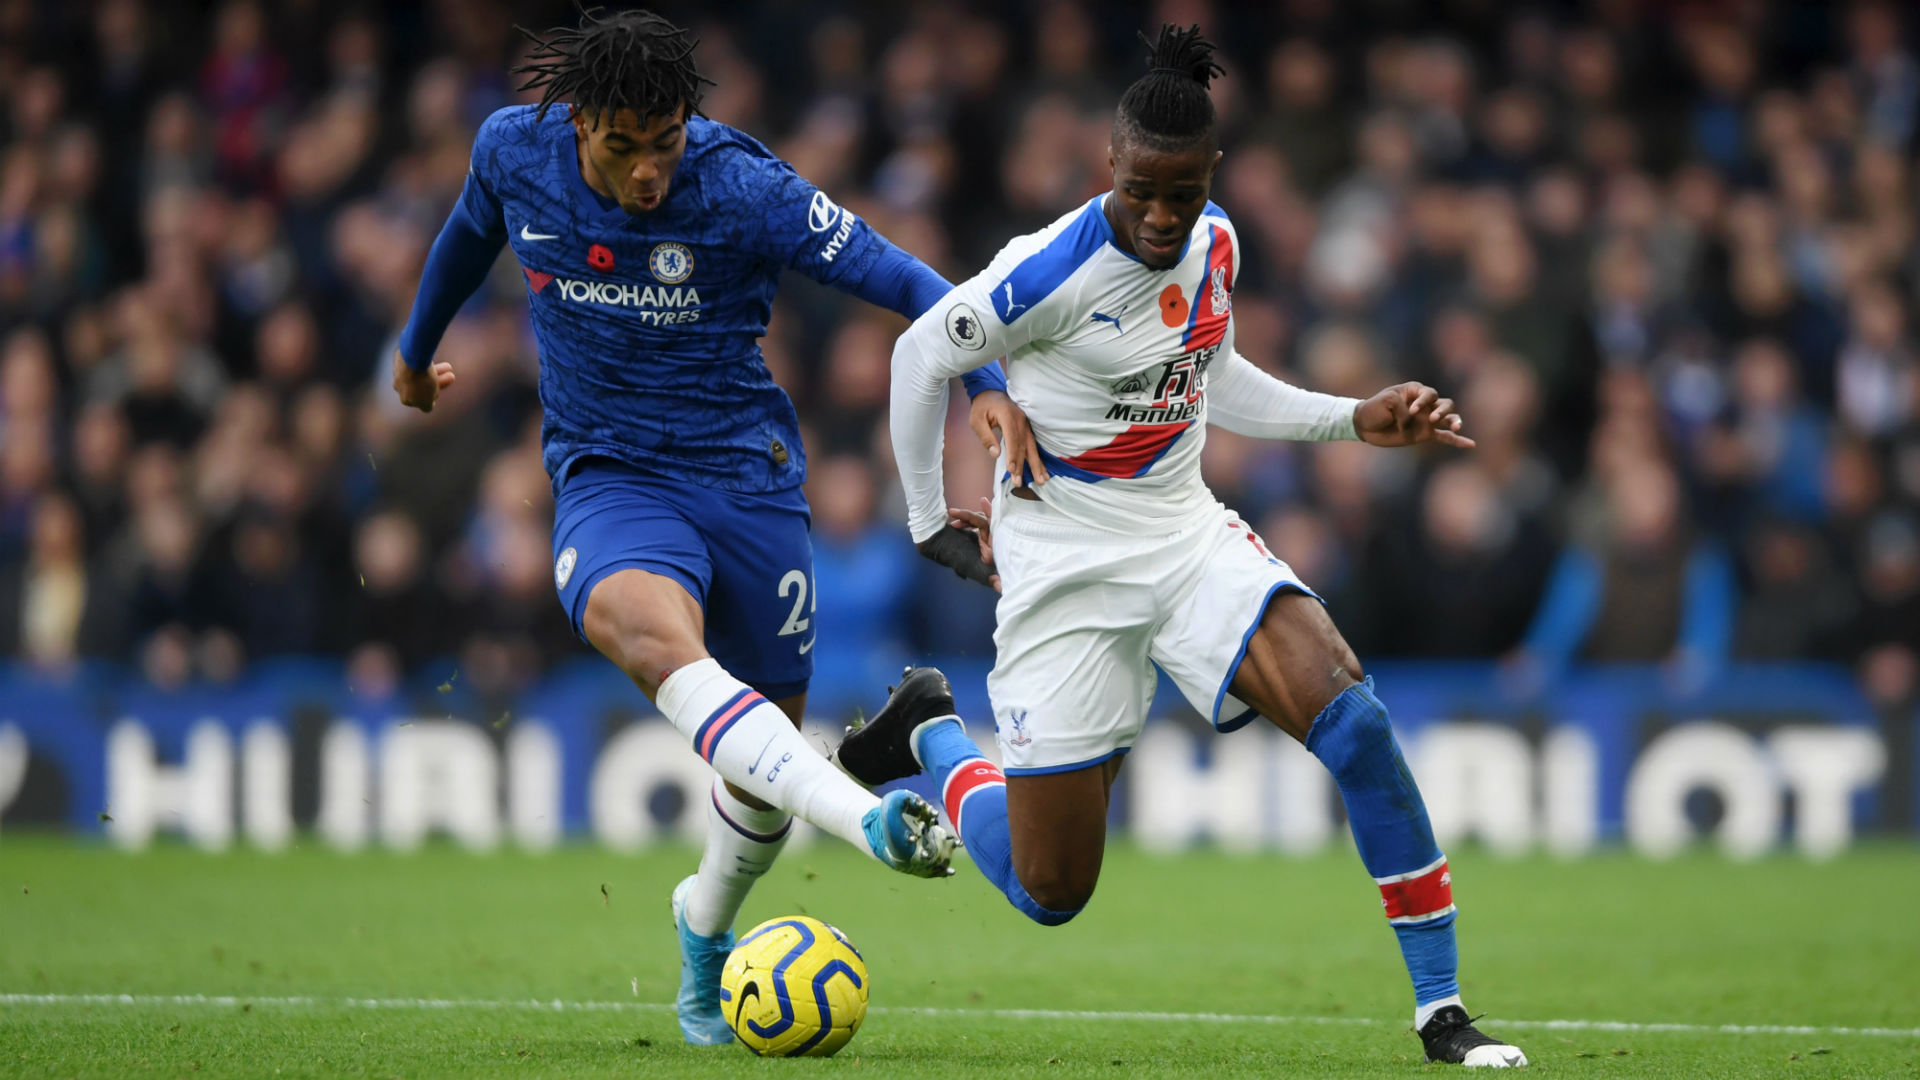 Lampard applauds James' nullifying of Zaha as Hodgson defends under-fire winger